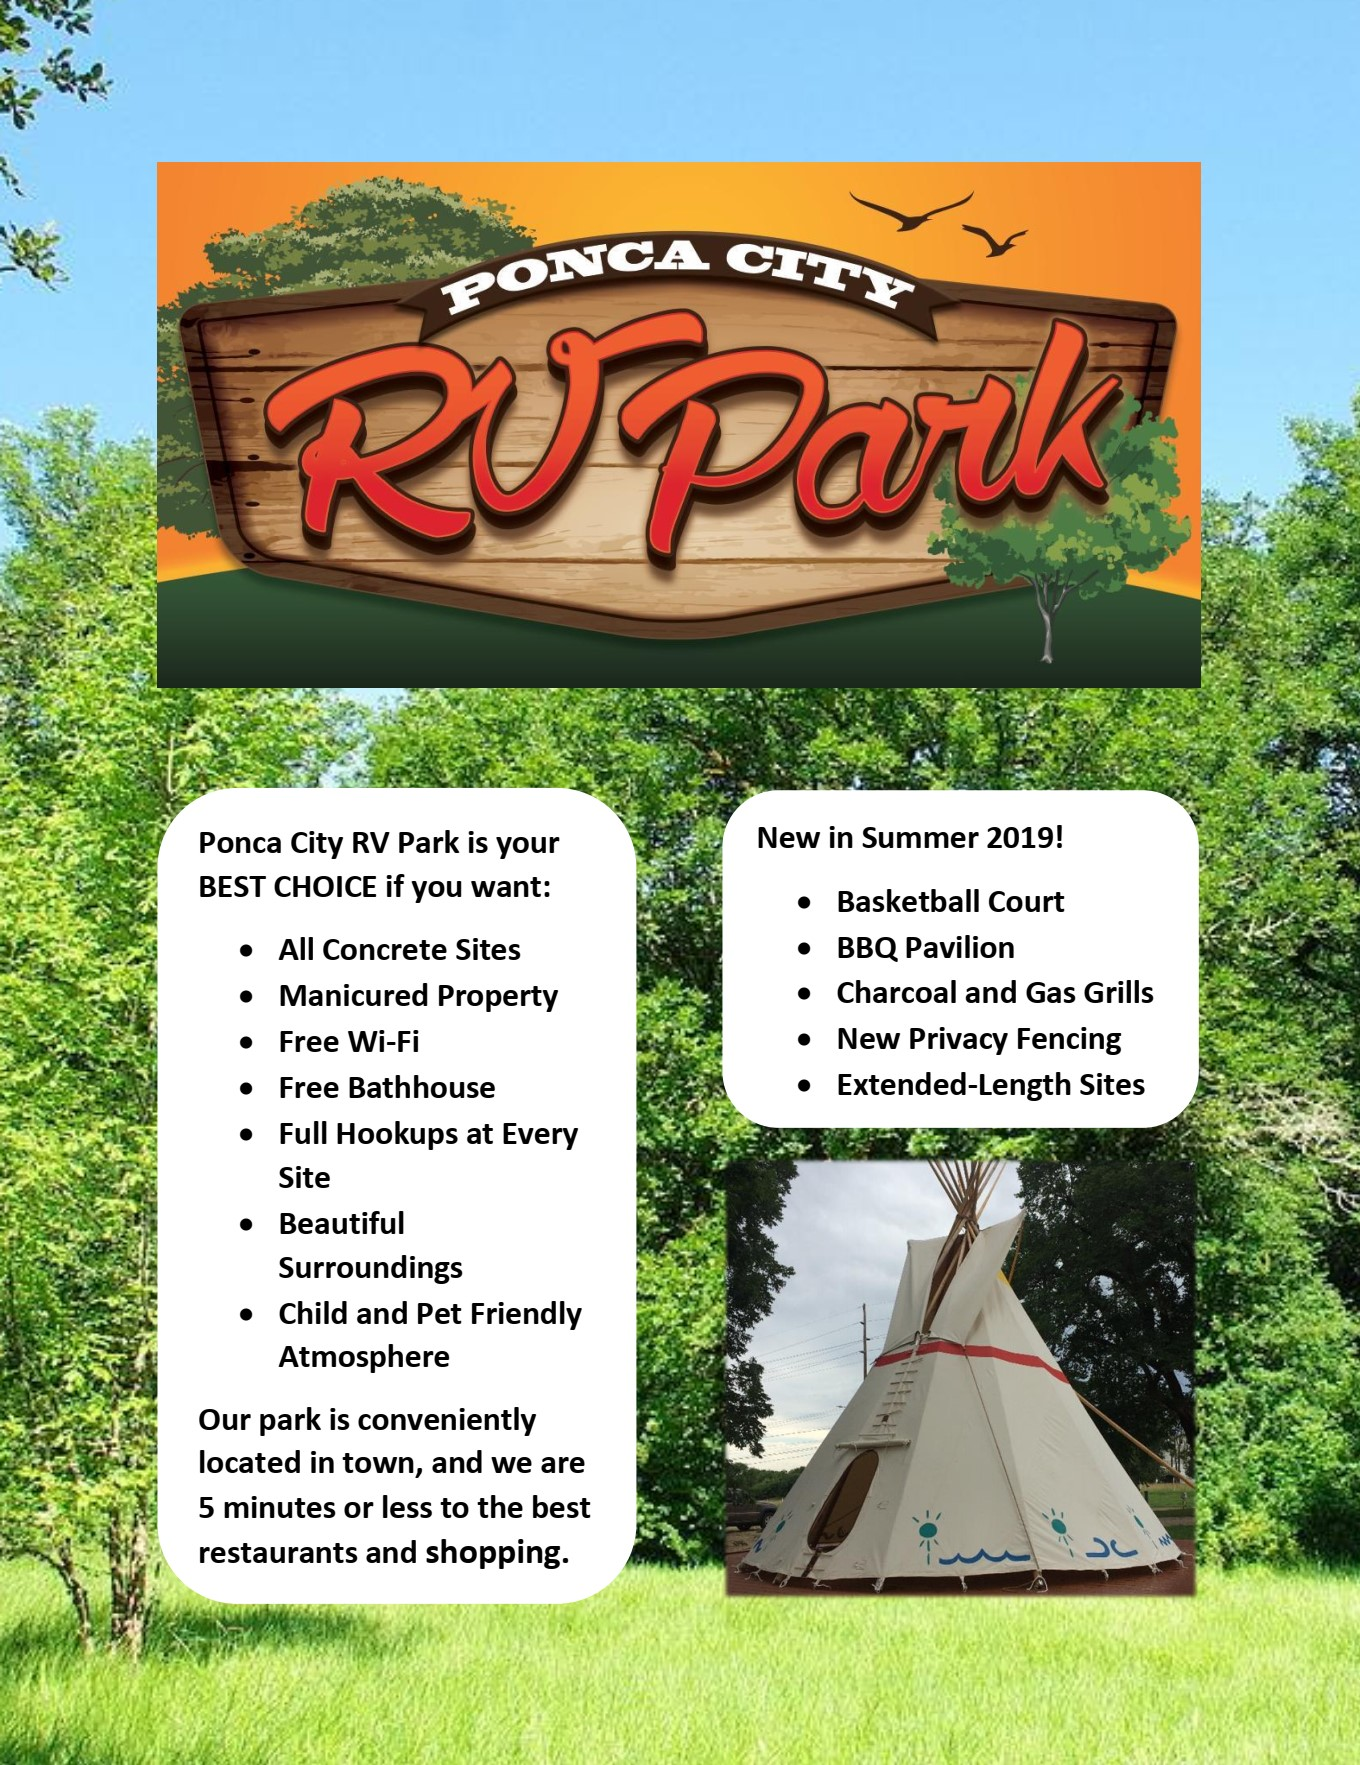 Ponca City RV Park